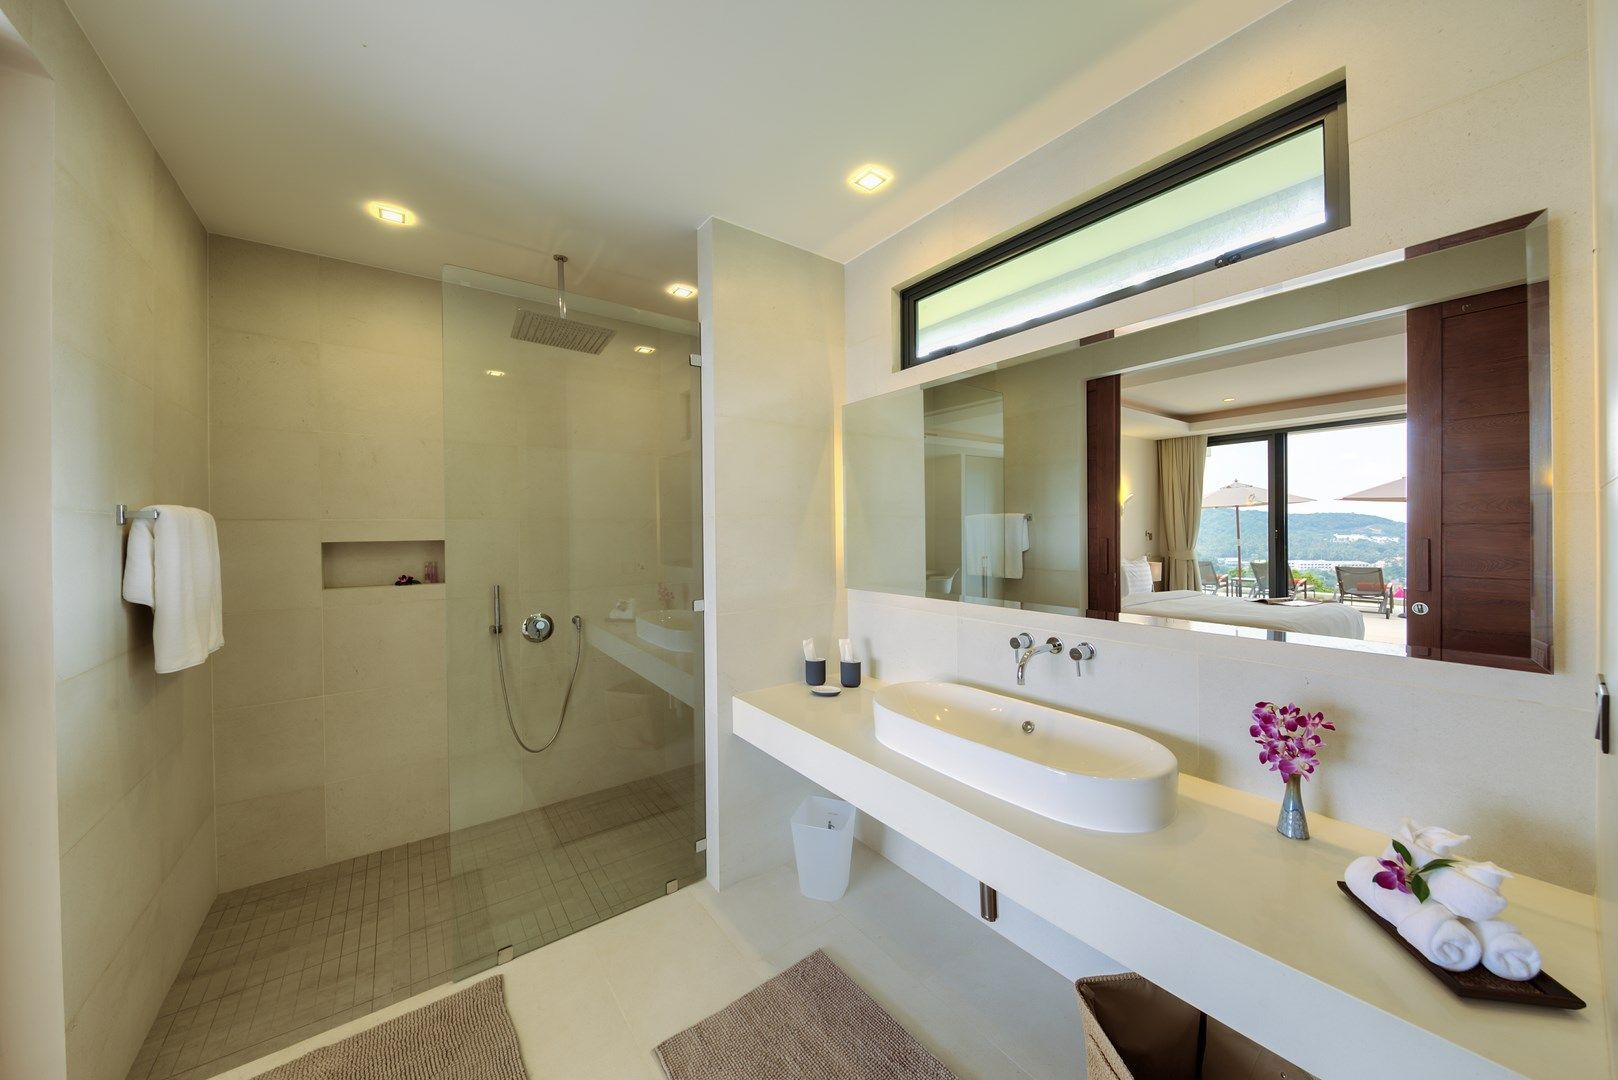 6 bedrooms luxurious panoramic sea view Villa in Bophut: 6 bedrooms luxurious panoramic sea view Villa in Bophut for sale